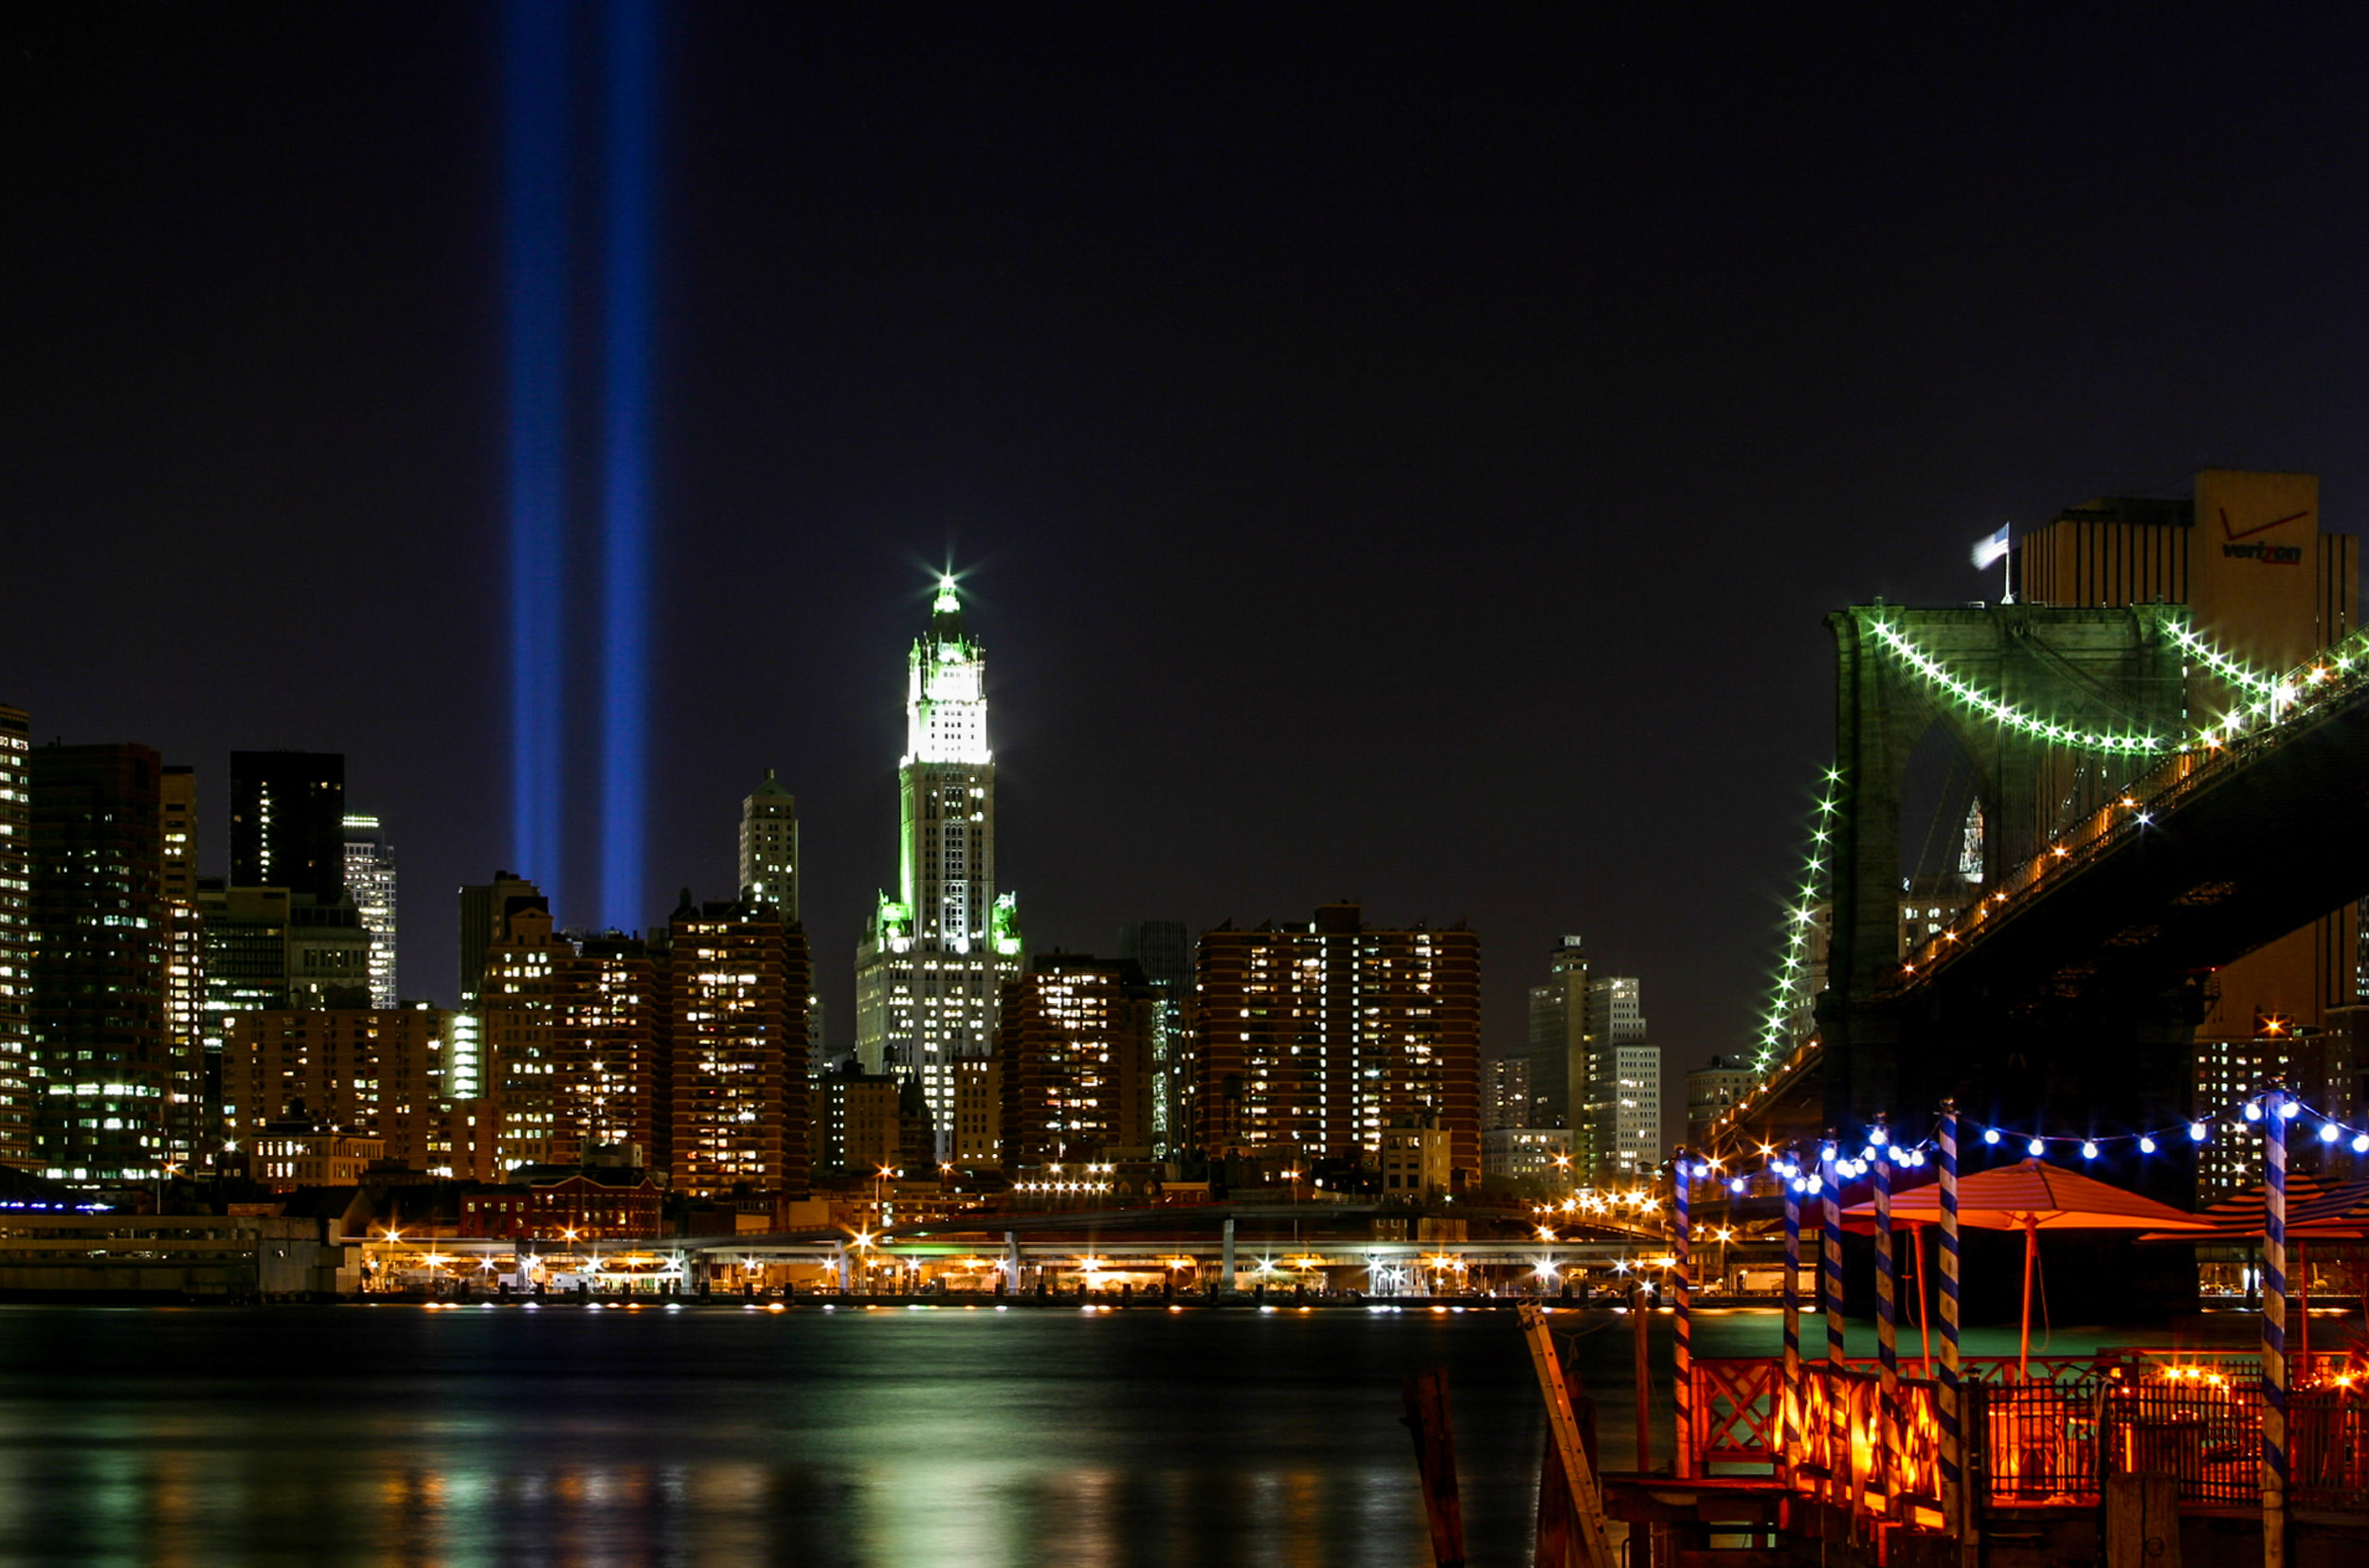 The events of September 11, 2001, will always be ingrained in the memories of New Yorkers. Images depicting the dual blue beams where the Twin Towers once stood still elicit an emotional reaction from most Americans. Ken captured this long-exposure image the first year that NYC began illuminating the location. -